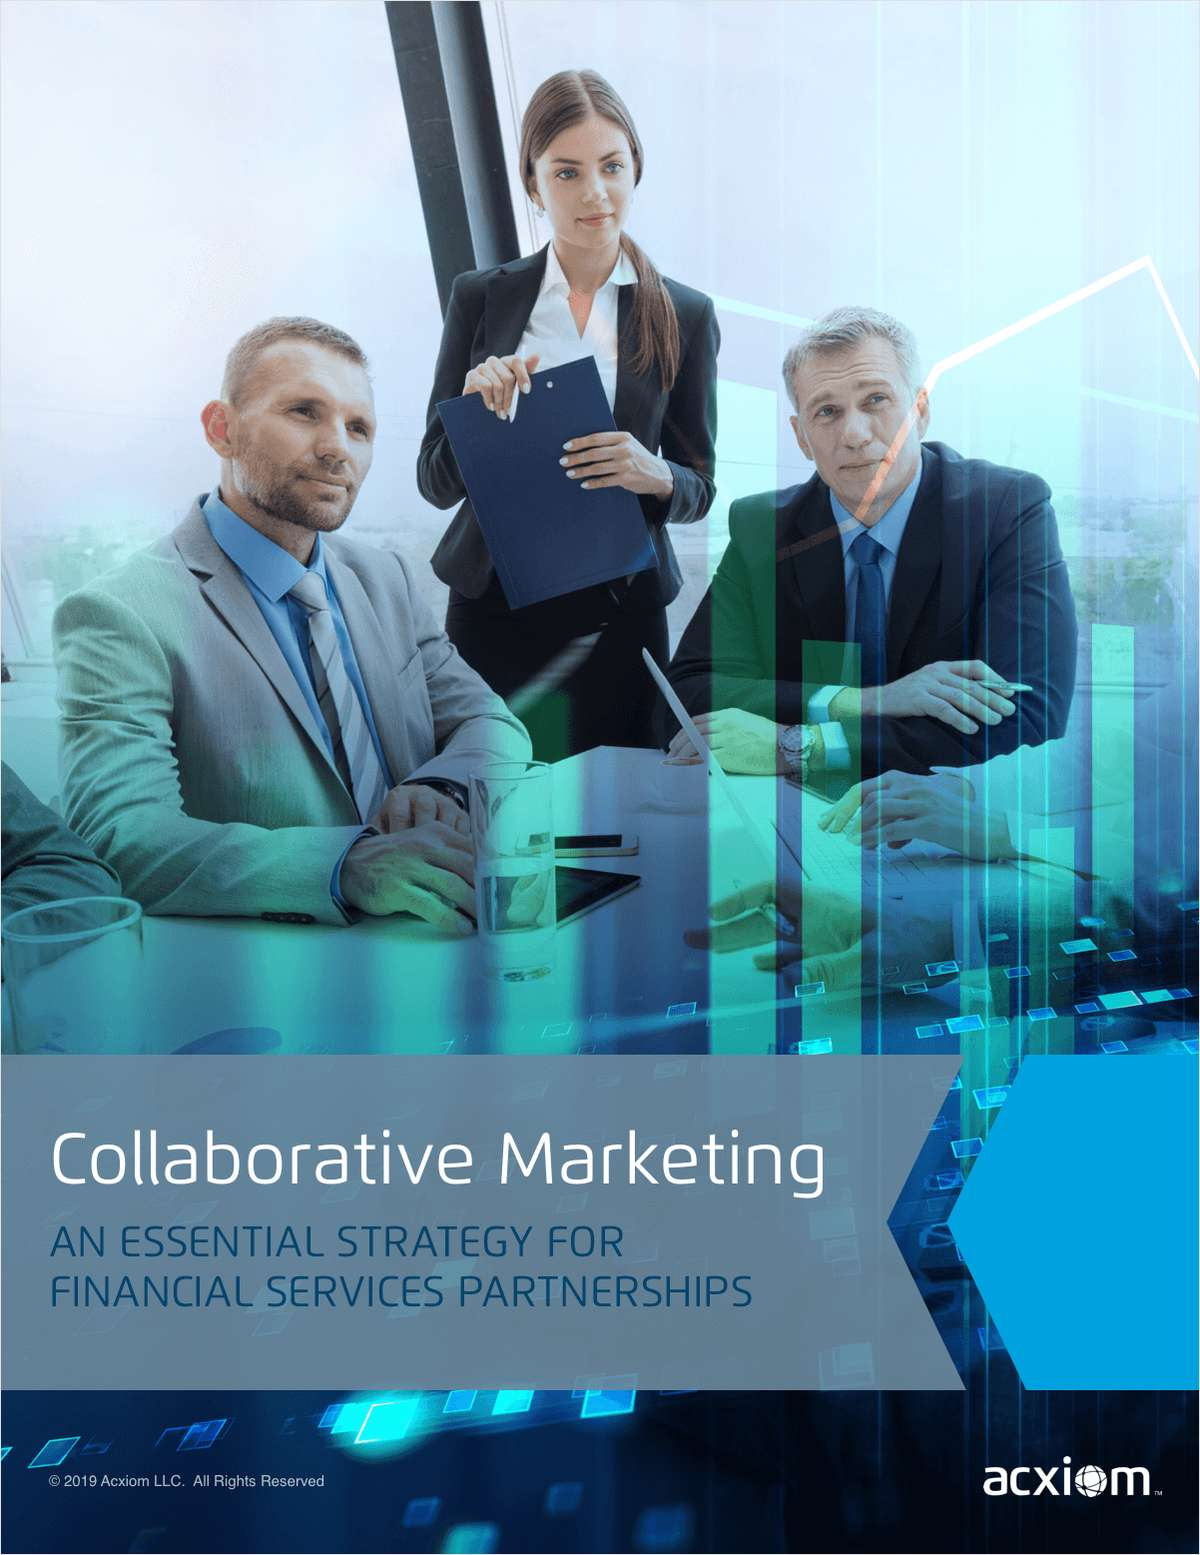 Transform Your Financial Services Partnerships With Collaborative Marketing